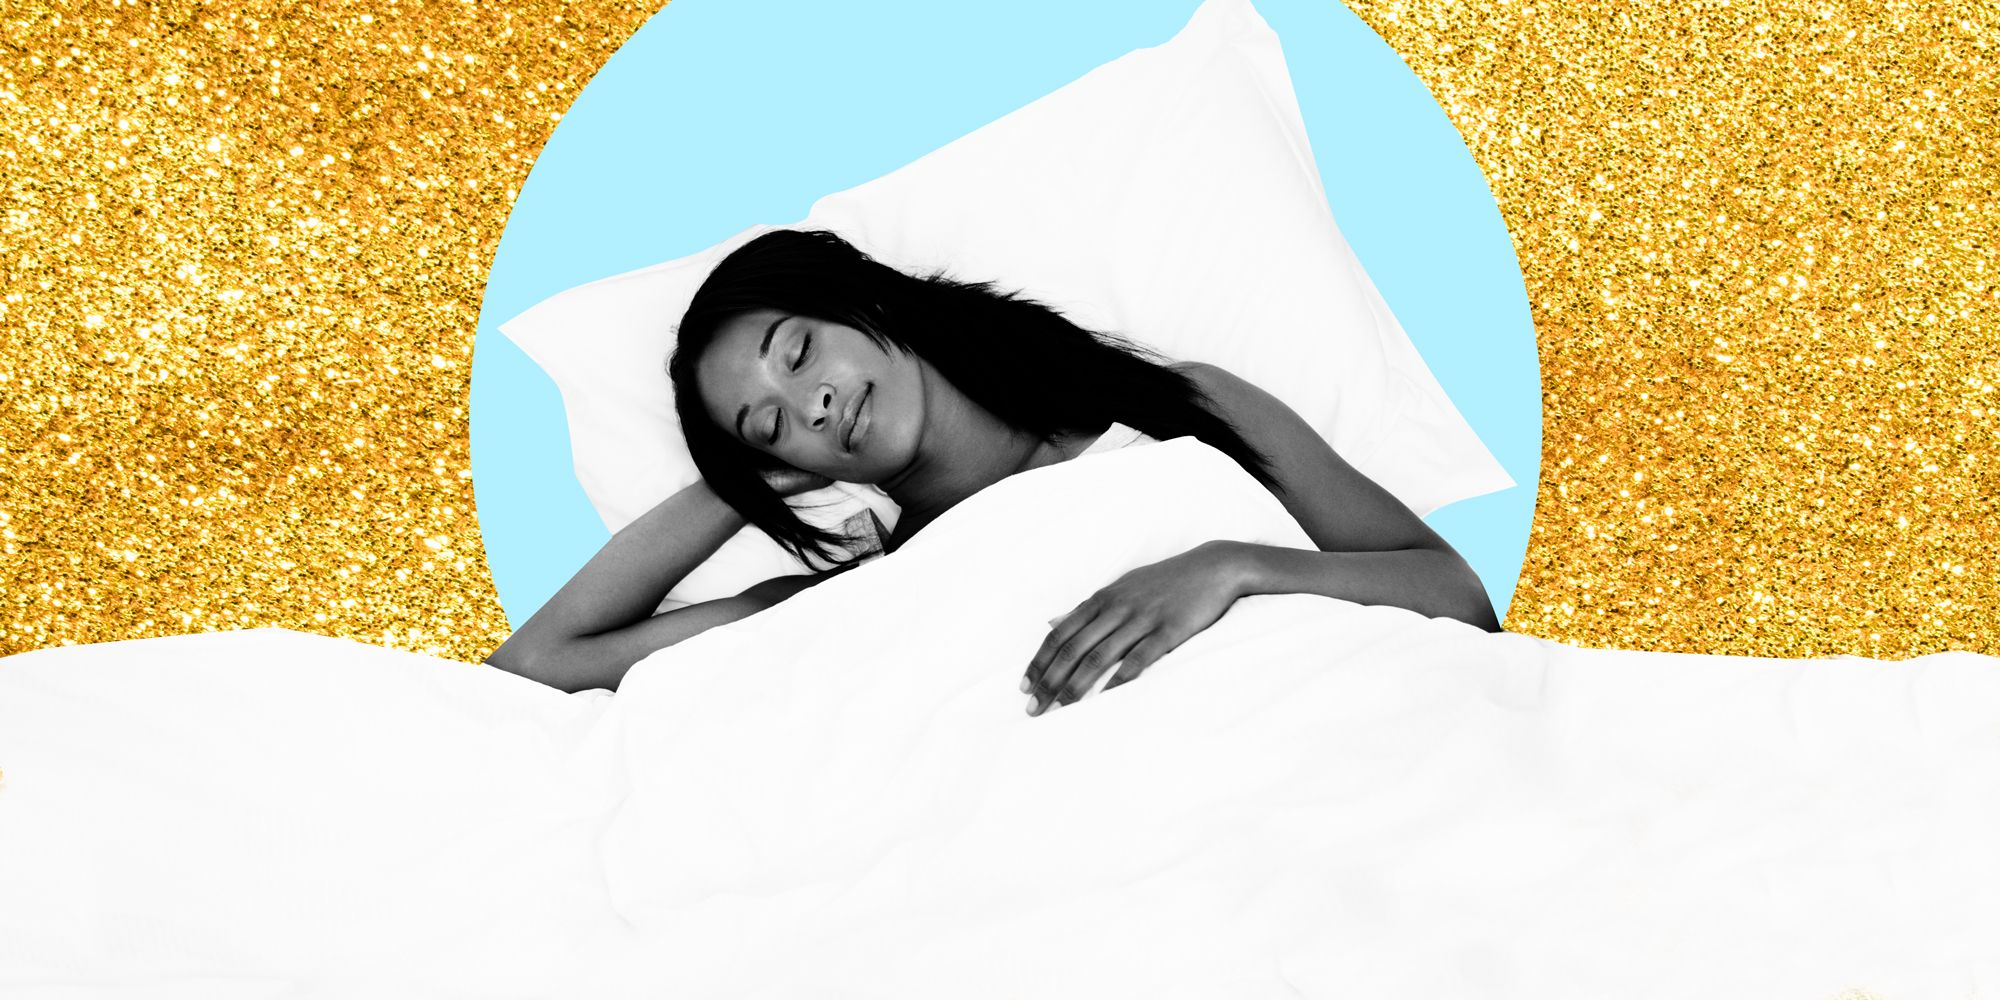 10 Duvet Covers You'll Actually Be Excited About Putting On